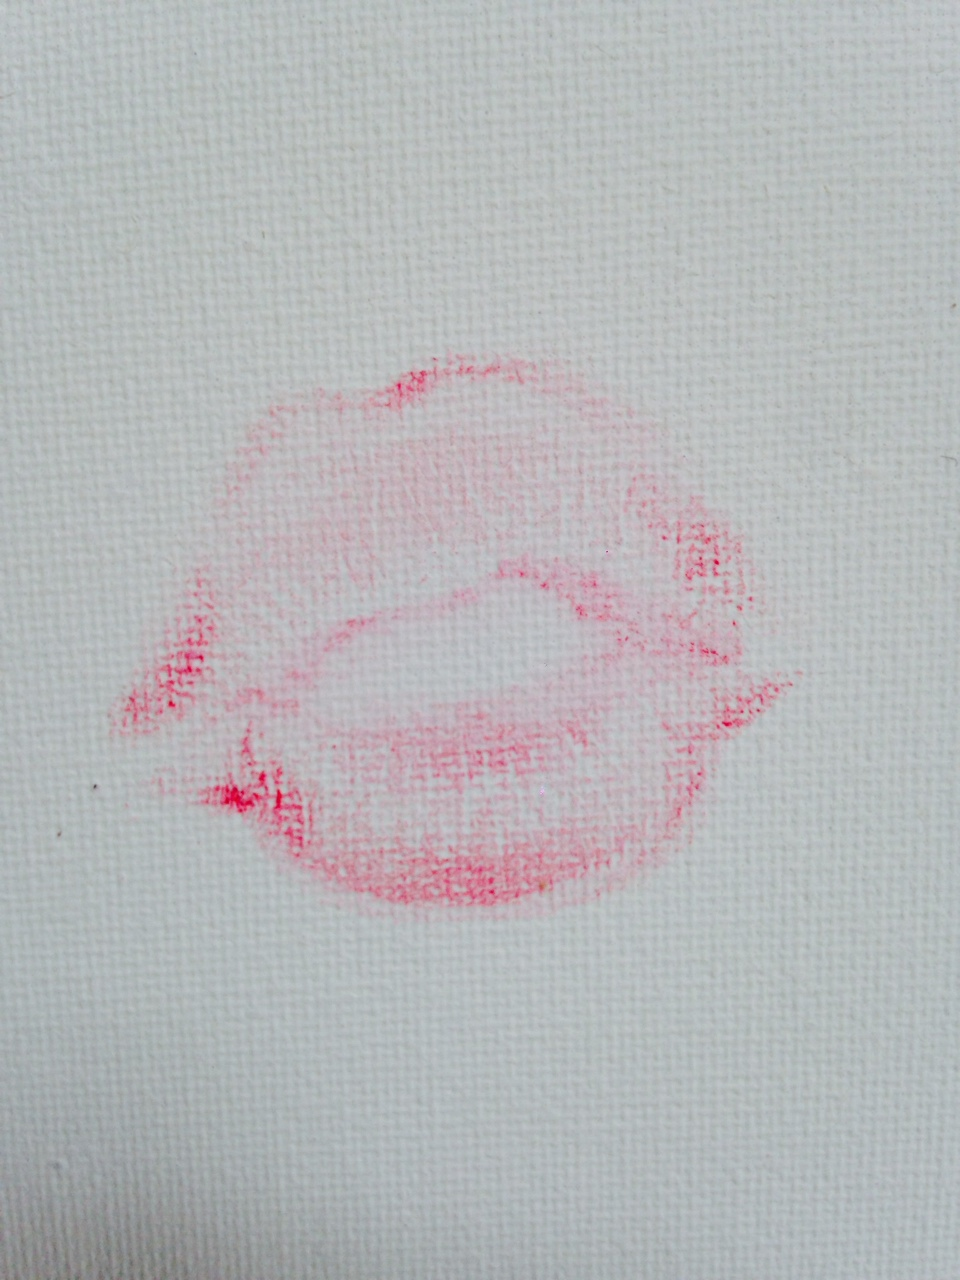 Lot 58 - Kate Moss Kate's Kiss Lipstick on paper.  Executed 2014.